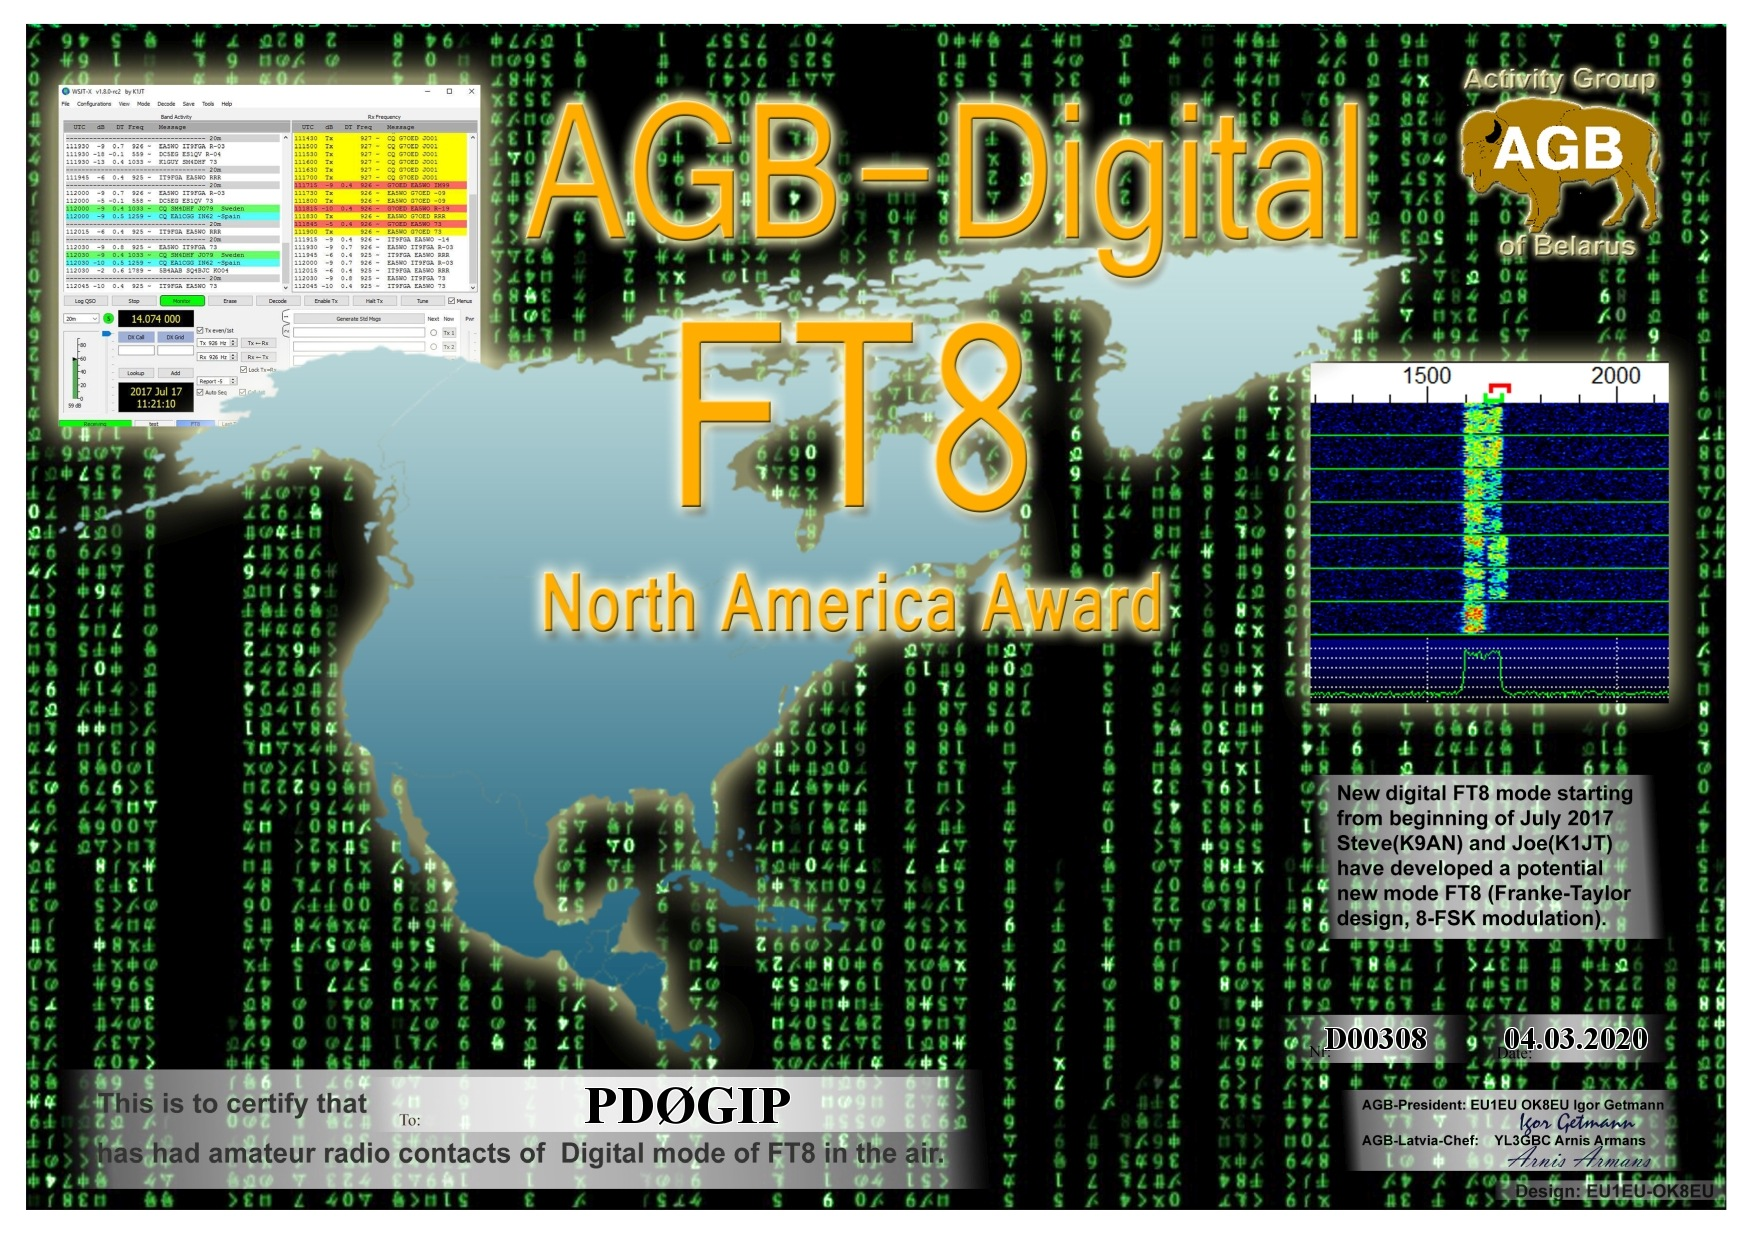 PD0GIP FT8 NORTHAMERICA BASIC AGB